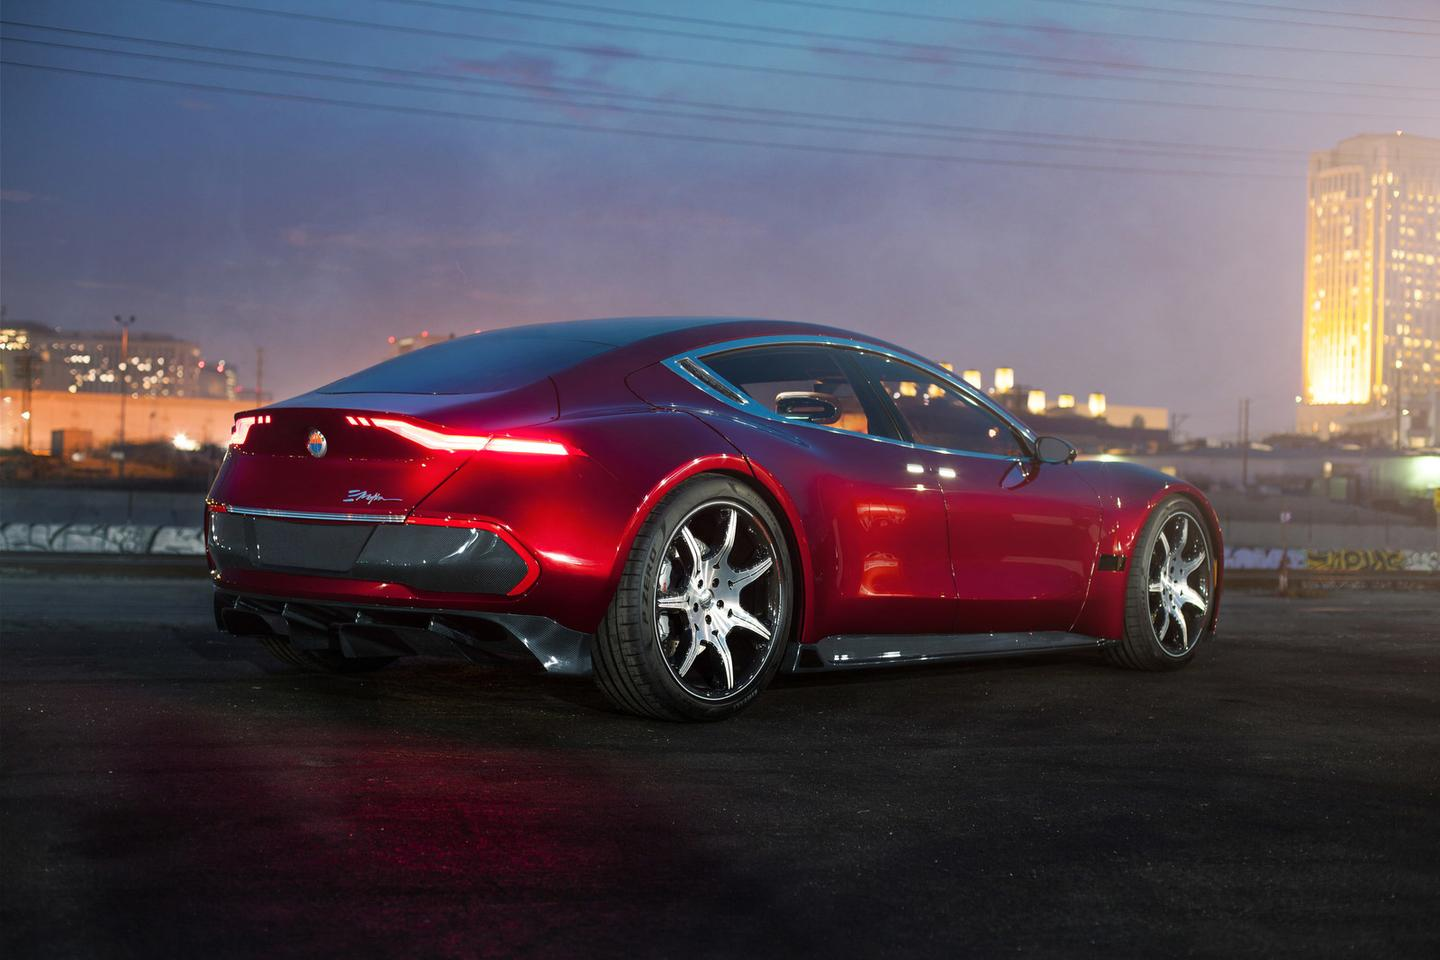 Fisker's EMotion looks much more aggressive than the average luxury sedan